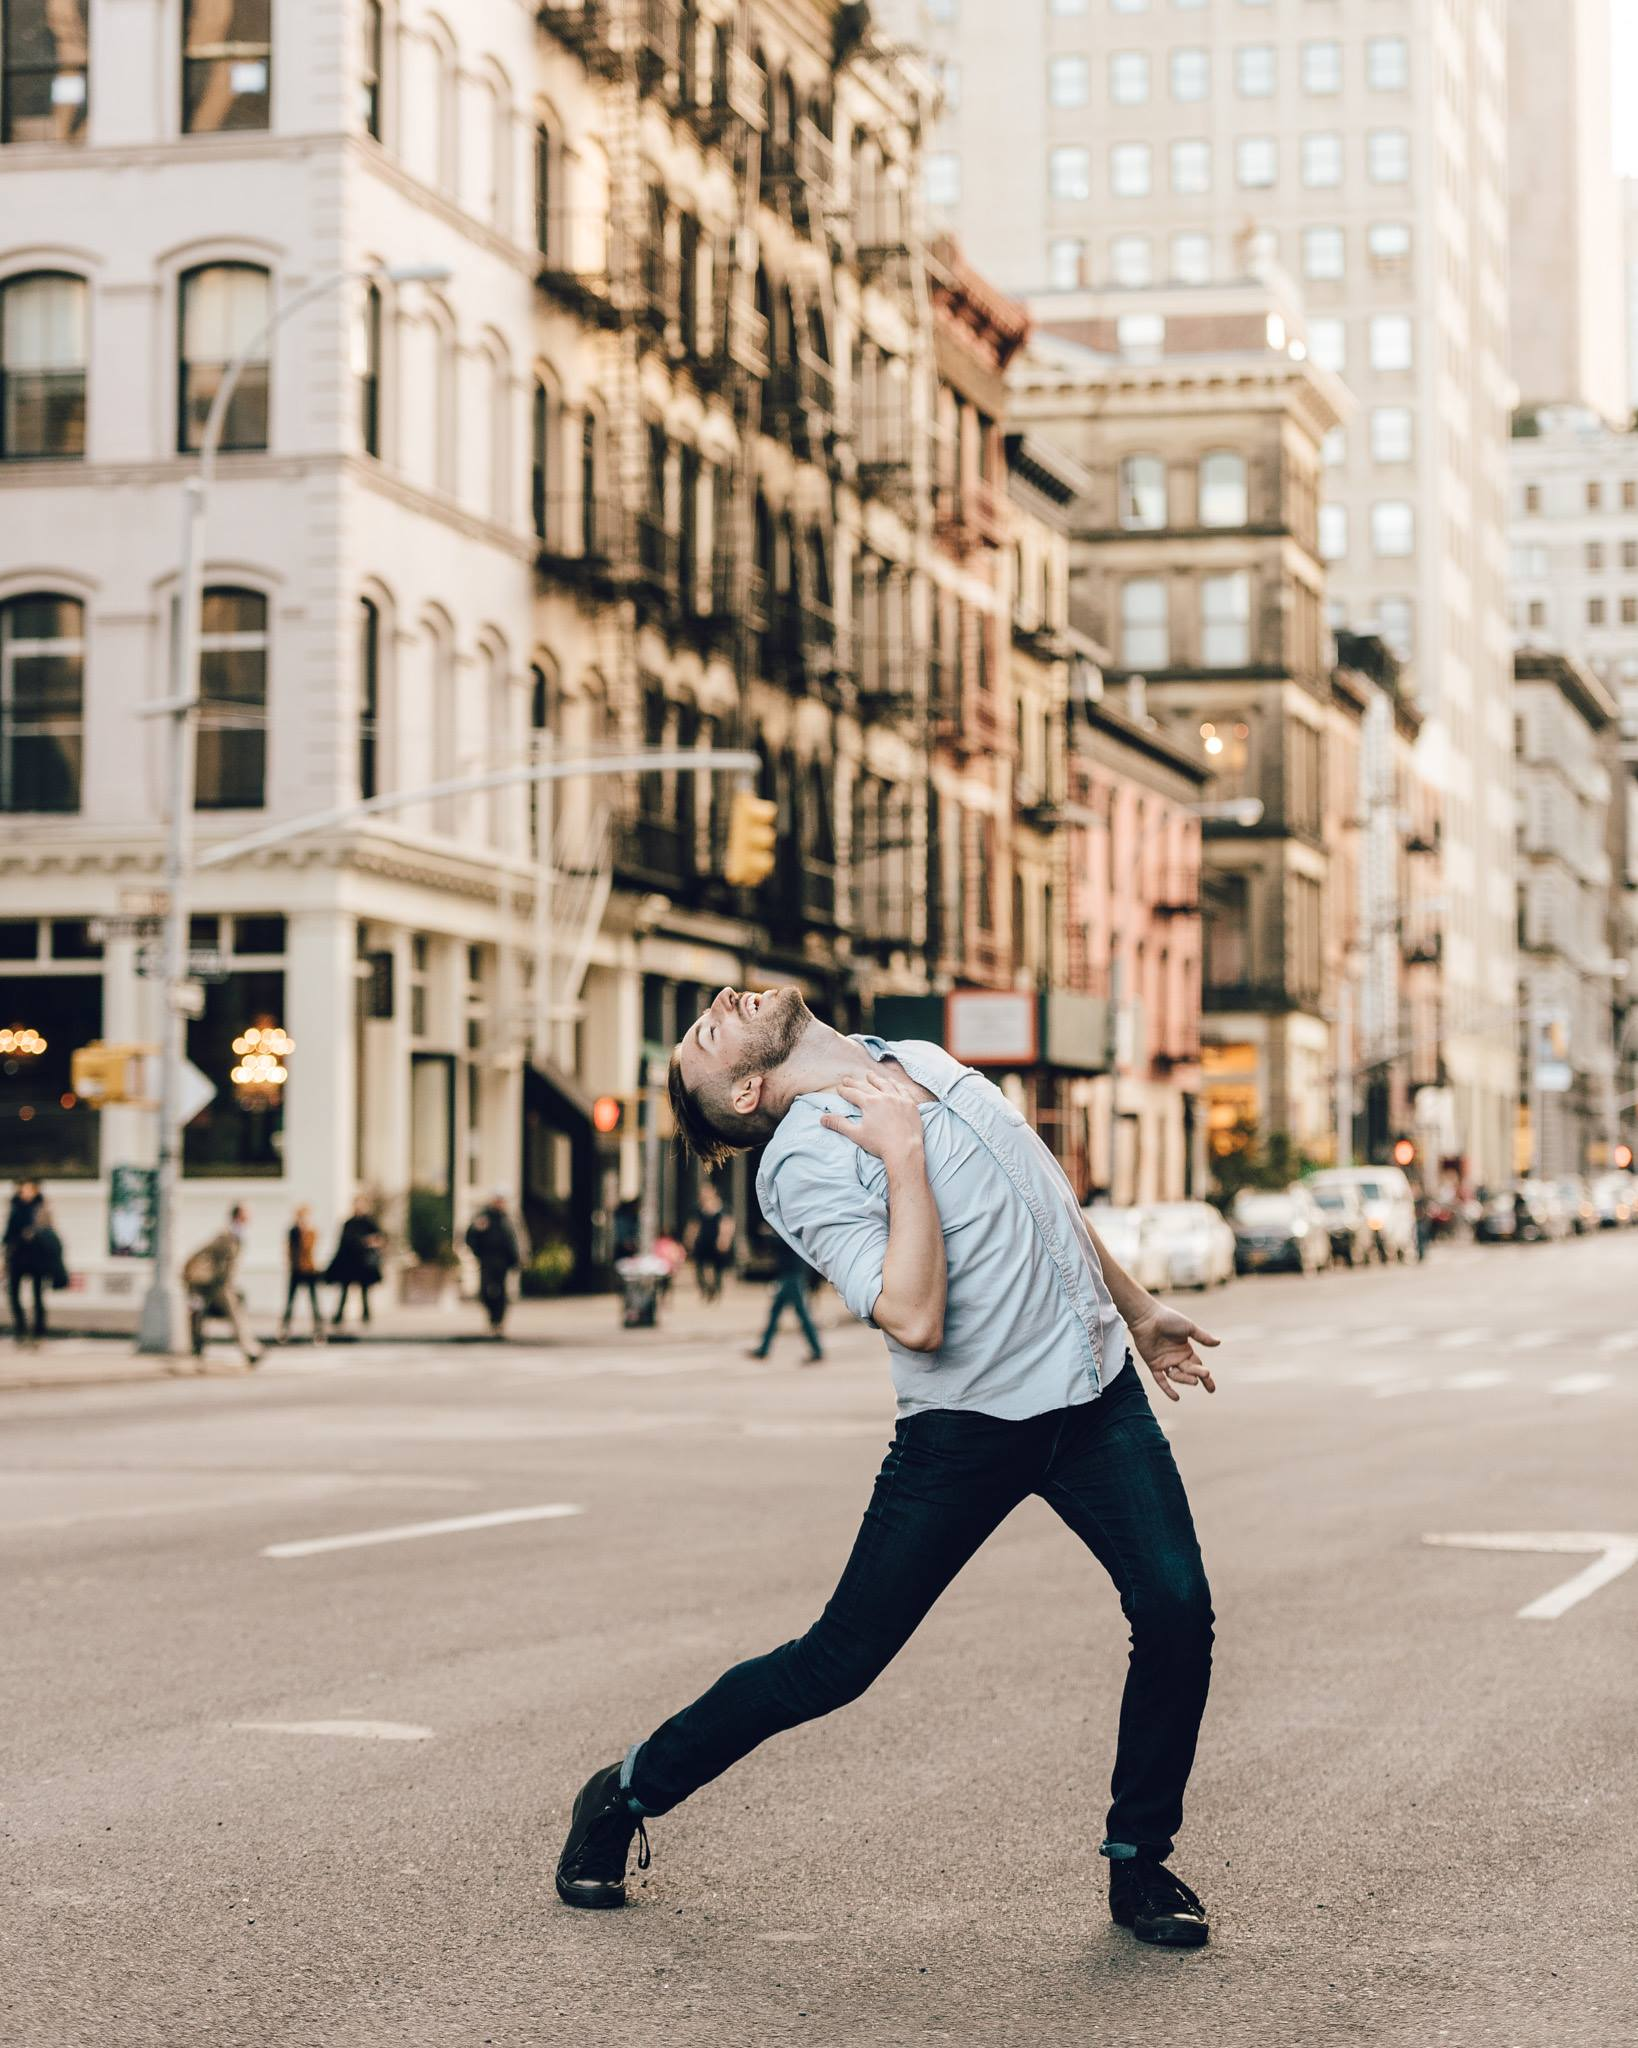 Billy Griffin - Dancers of New York - James Jin Images